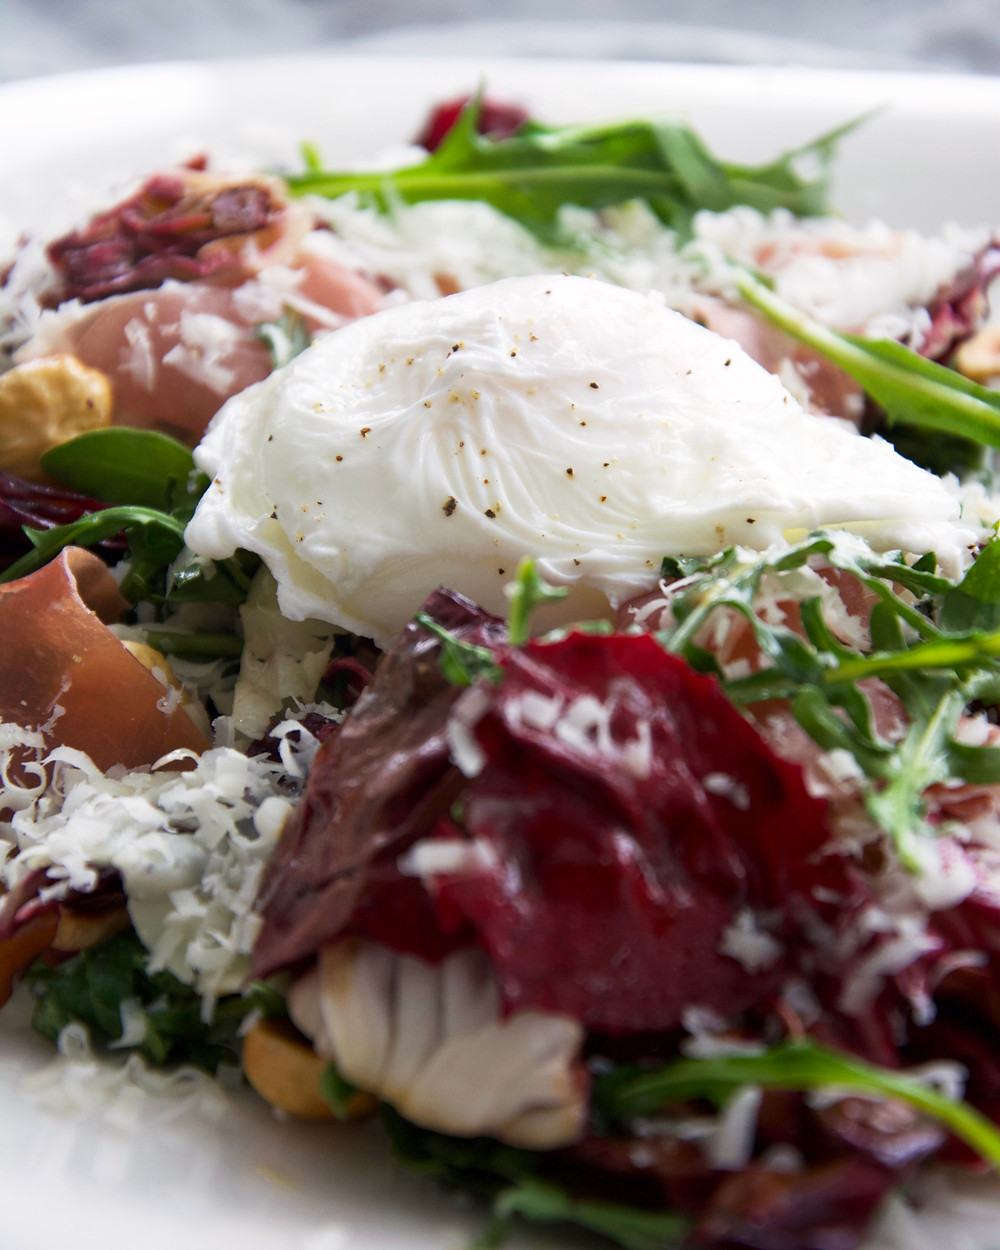 Grilled Radicchio Salad with hazelnuts, Pecorino Romano cheese, prosciutto and a softly poached egg